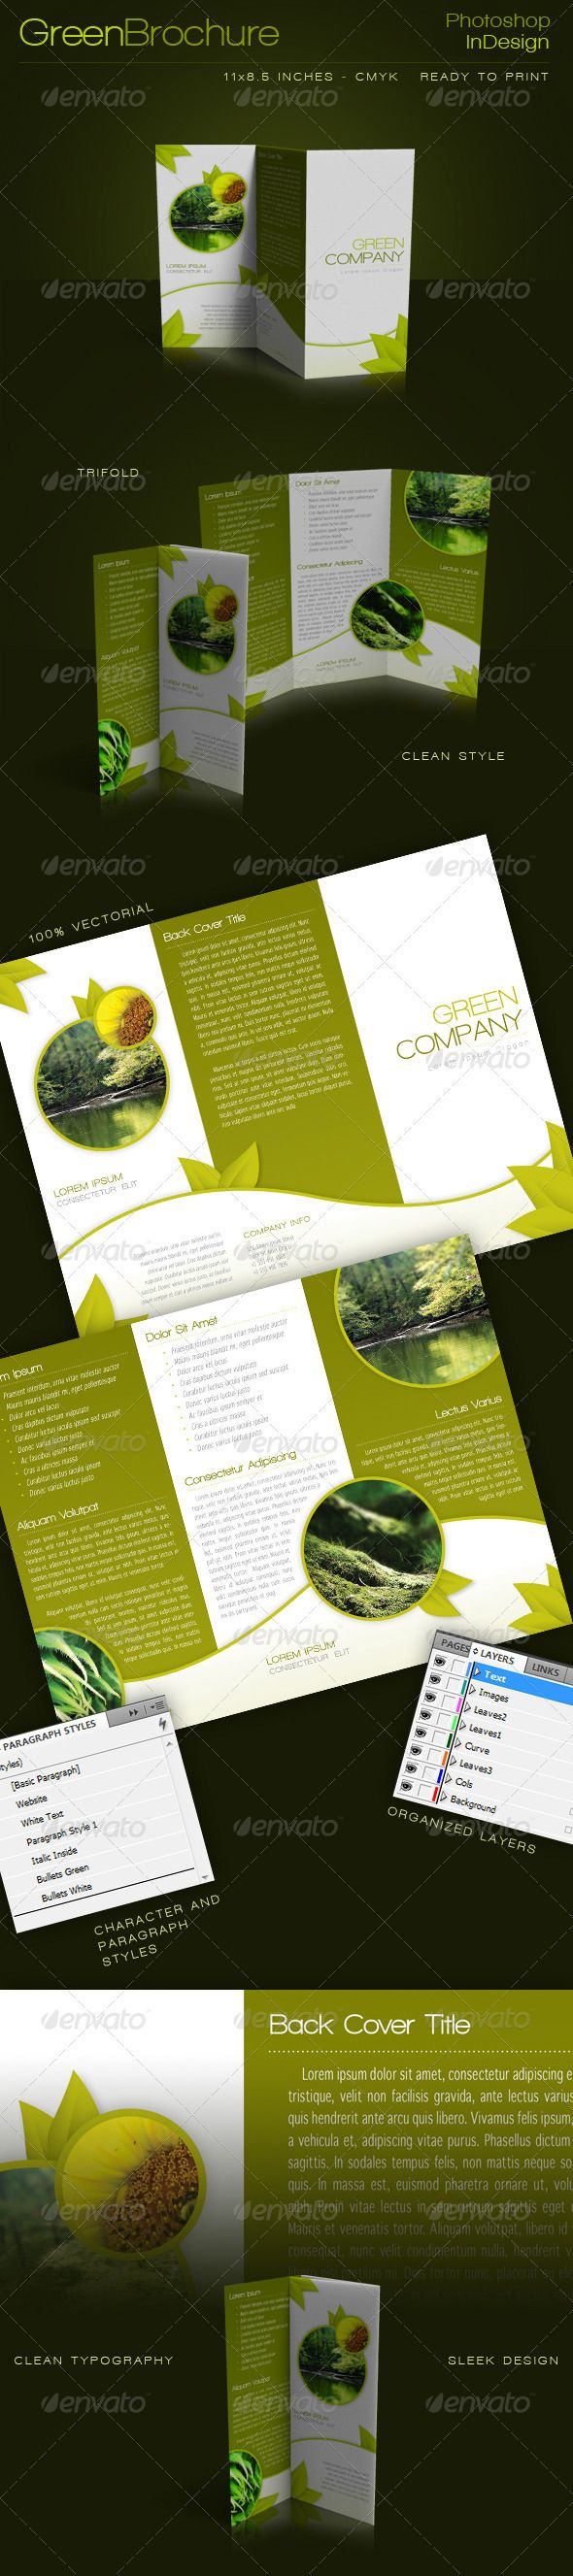 indesign template brochure - 47 best images about indesign templates on pinterest